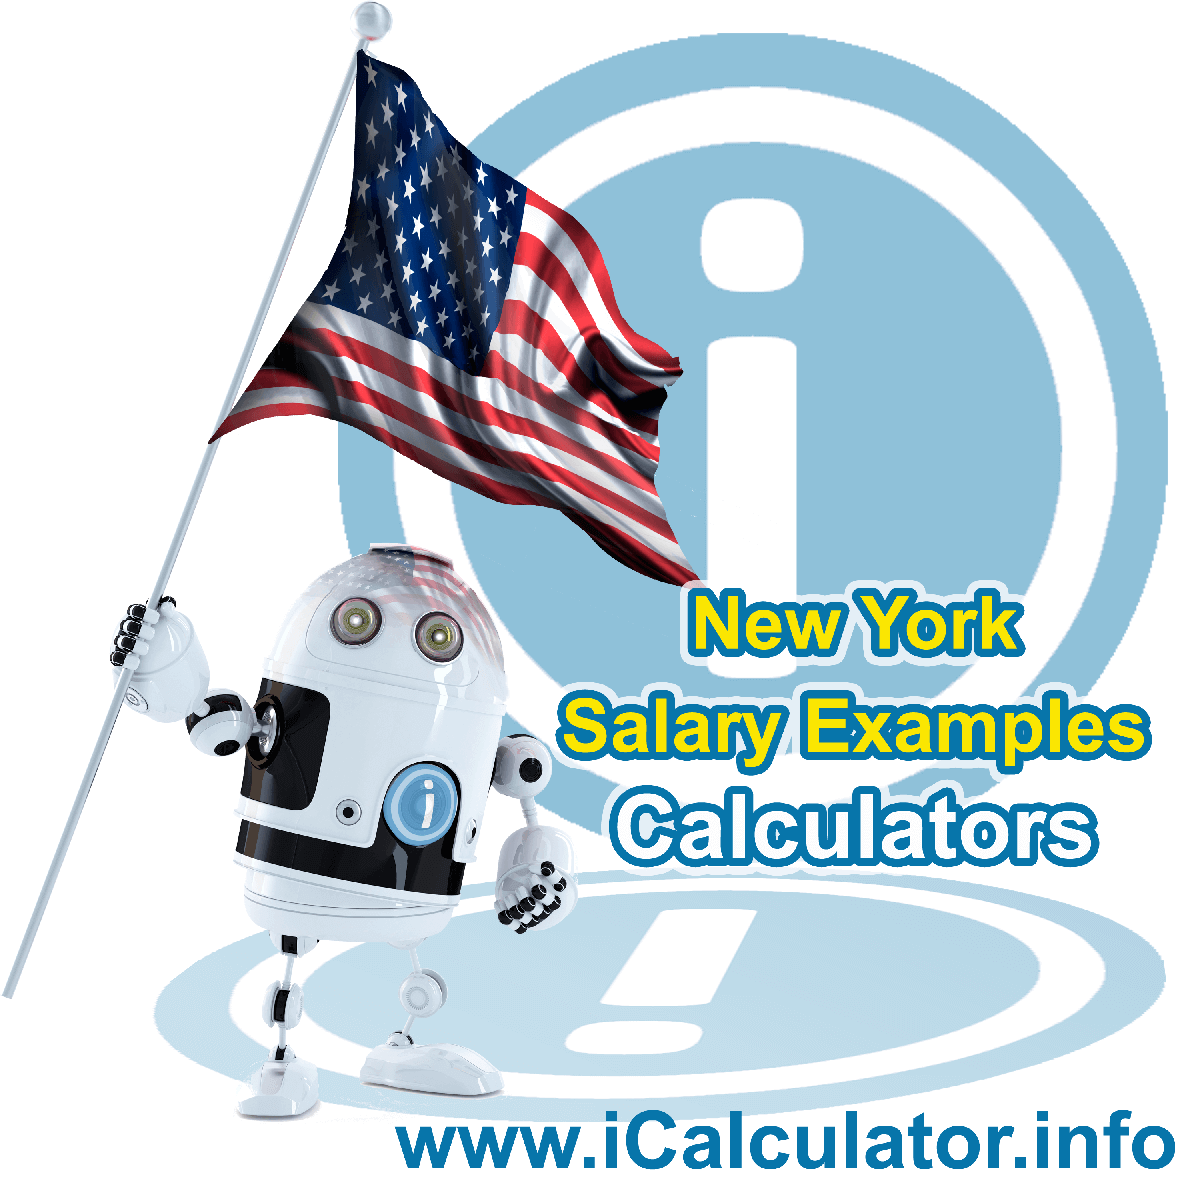 New York Salary Example for $190.00 in 2021 | iCalculator | $190.00 salary example for employee and employer paying New York State tincome taxes. Detailed salary after tax calculation including New York State Tax, Federal State Tax, Medicare Deductions, Social Security, Capital Gains and other income tax and salary deductions complete with supporting New York state tax tables